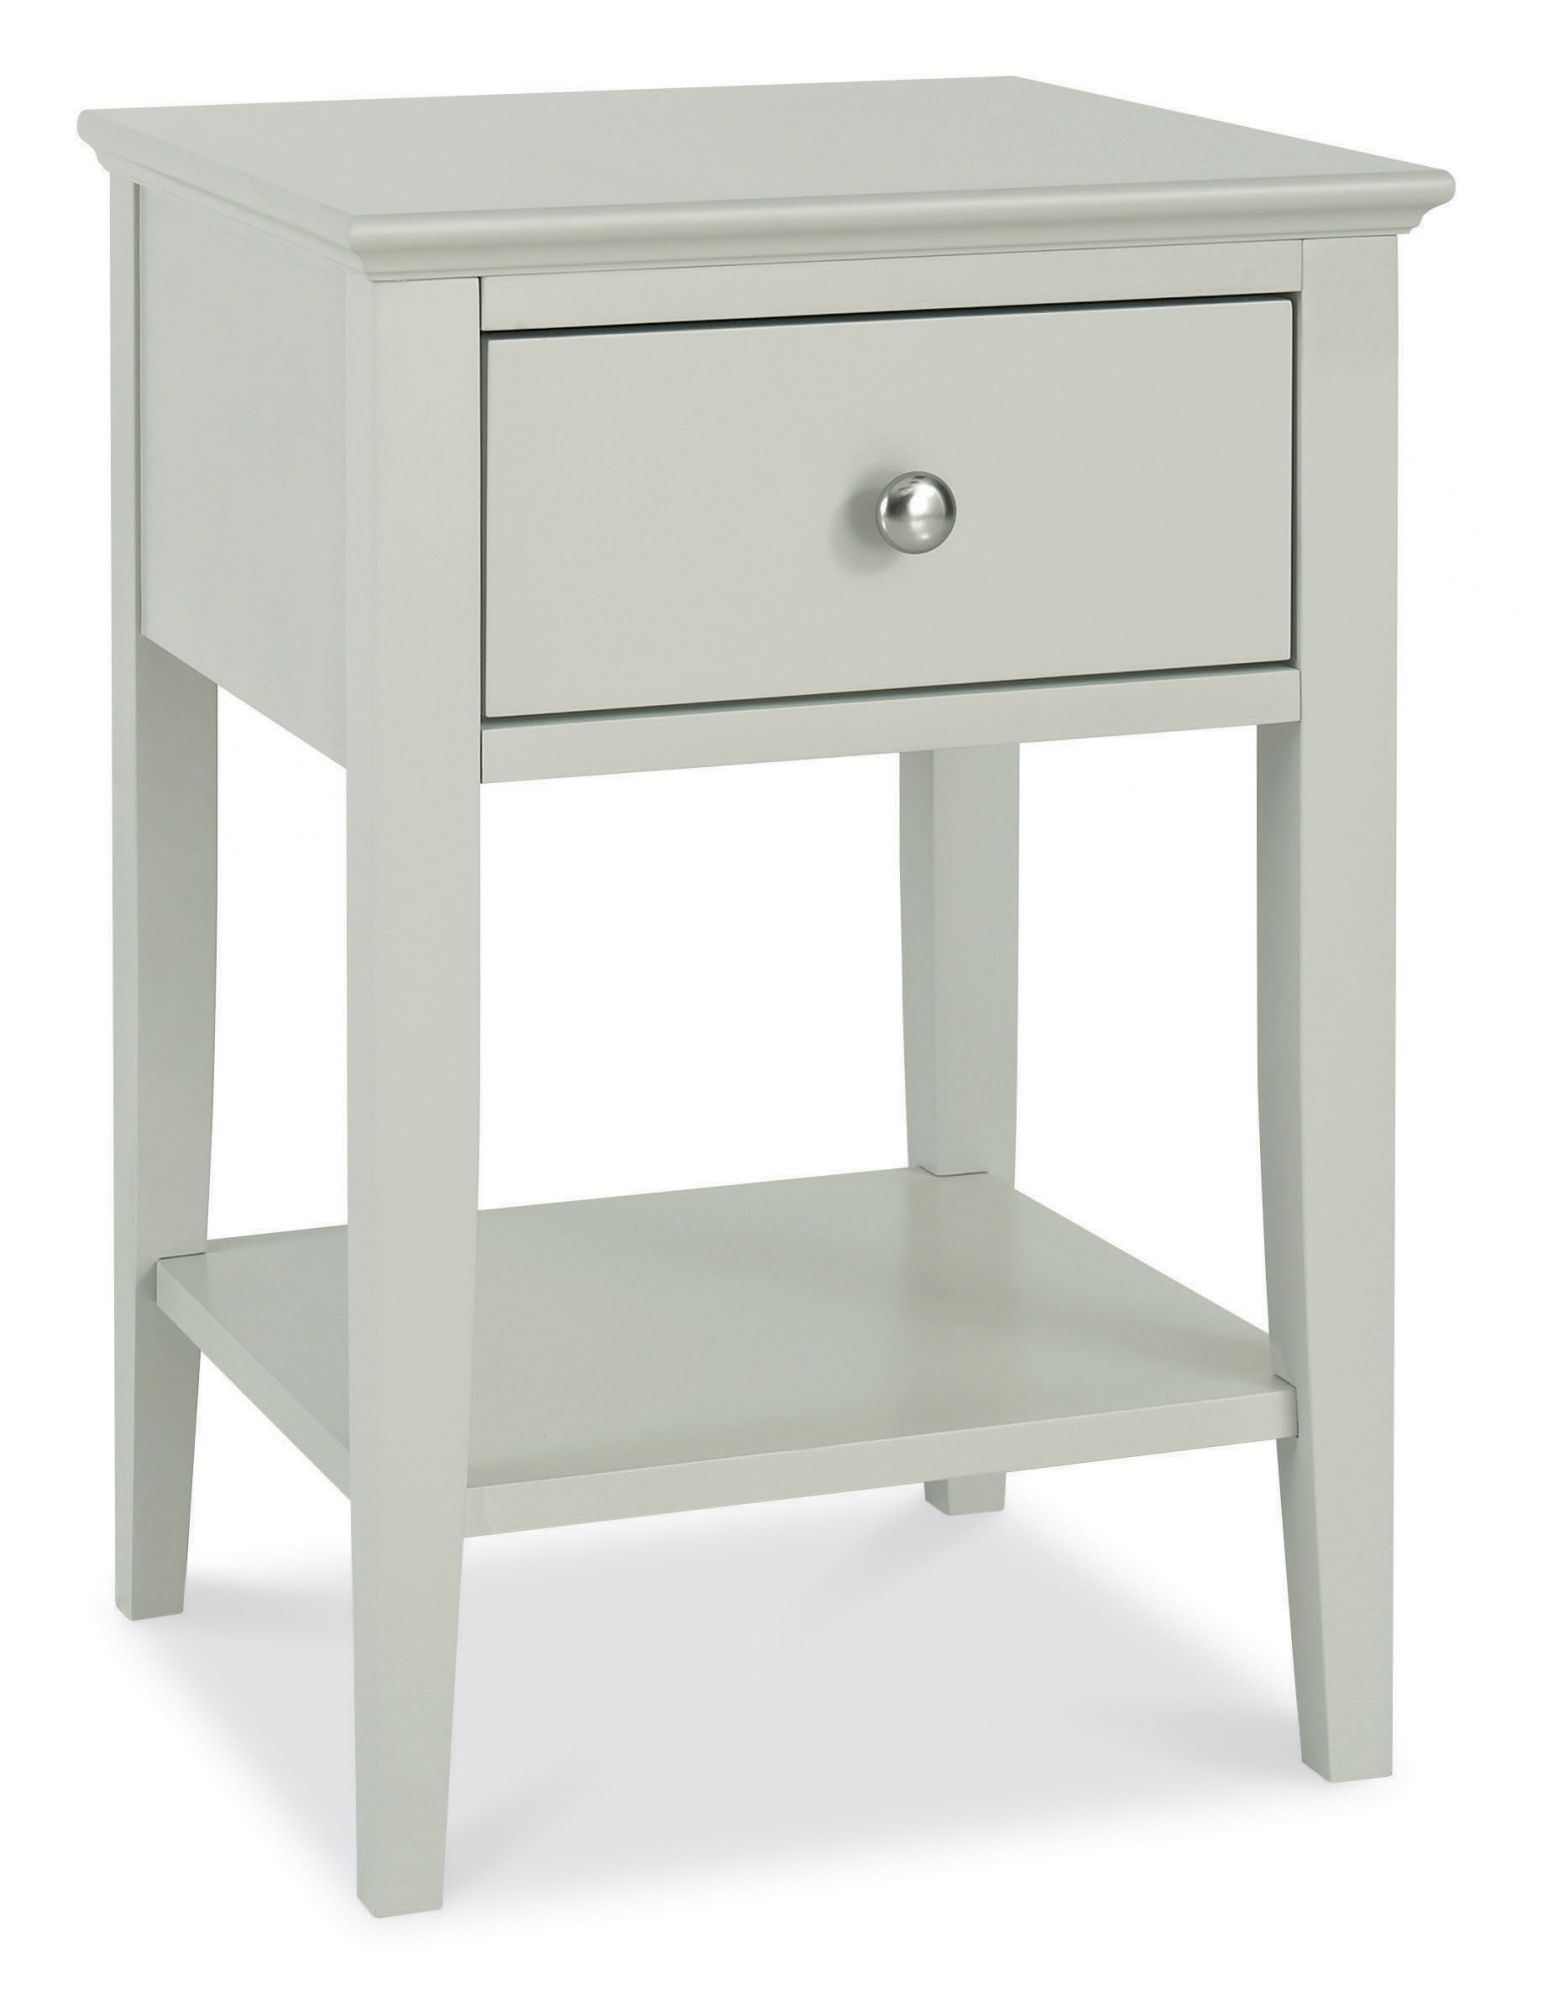 Photo of Bentley designs ashby cotton 1 drawer nightstand